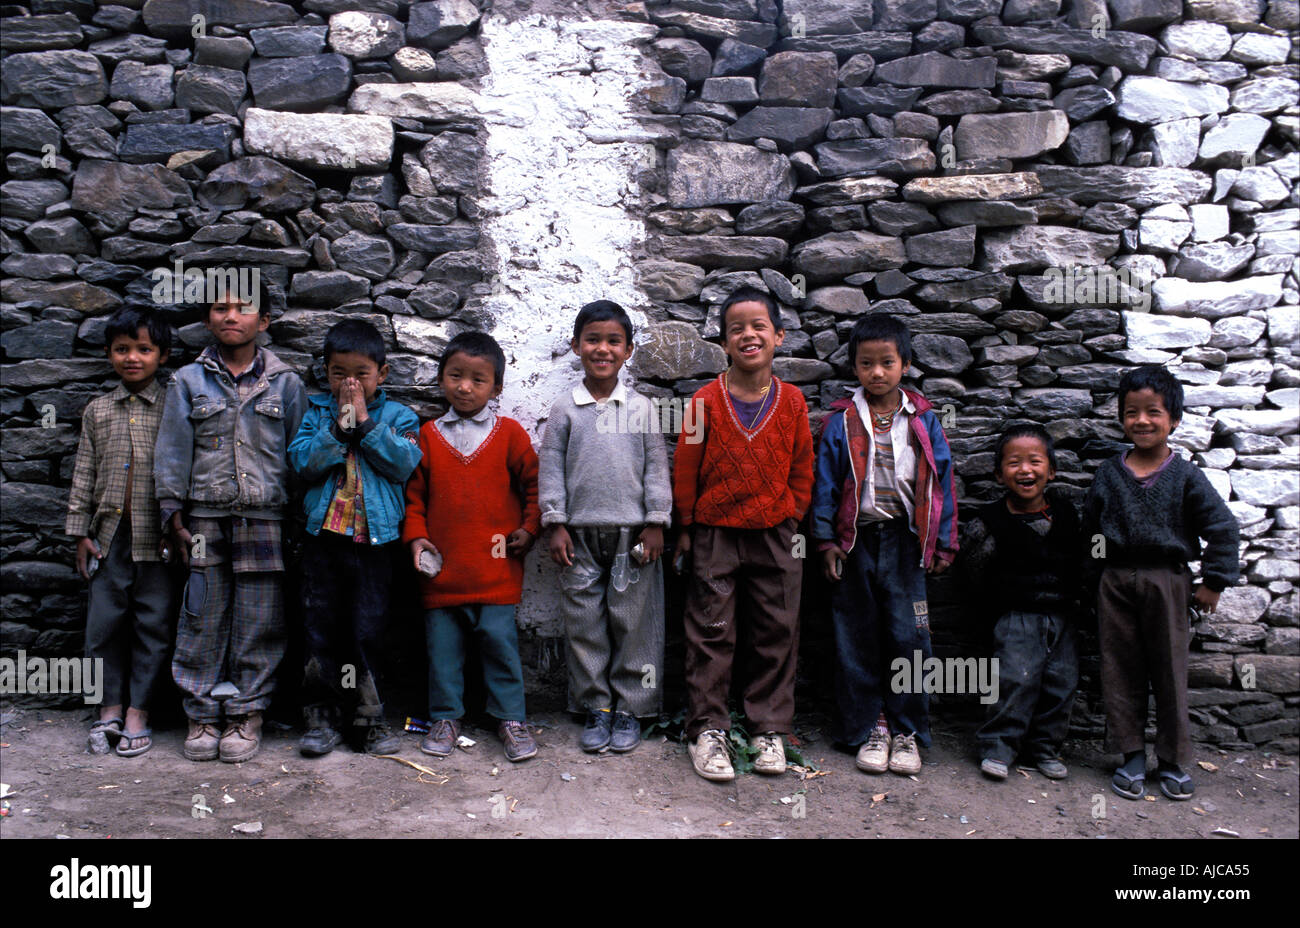 A group of boys from Keylong Himachal Pradesh foothills of the Himalayas lined up against a stone wall India - Stock Image